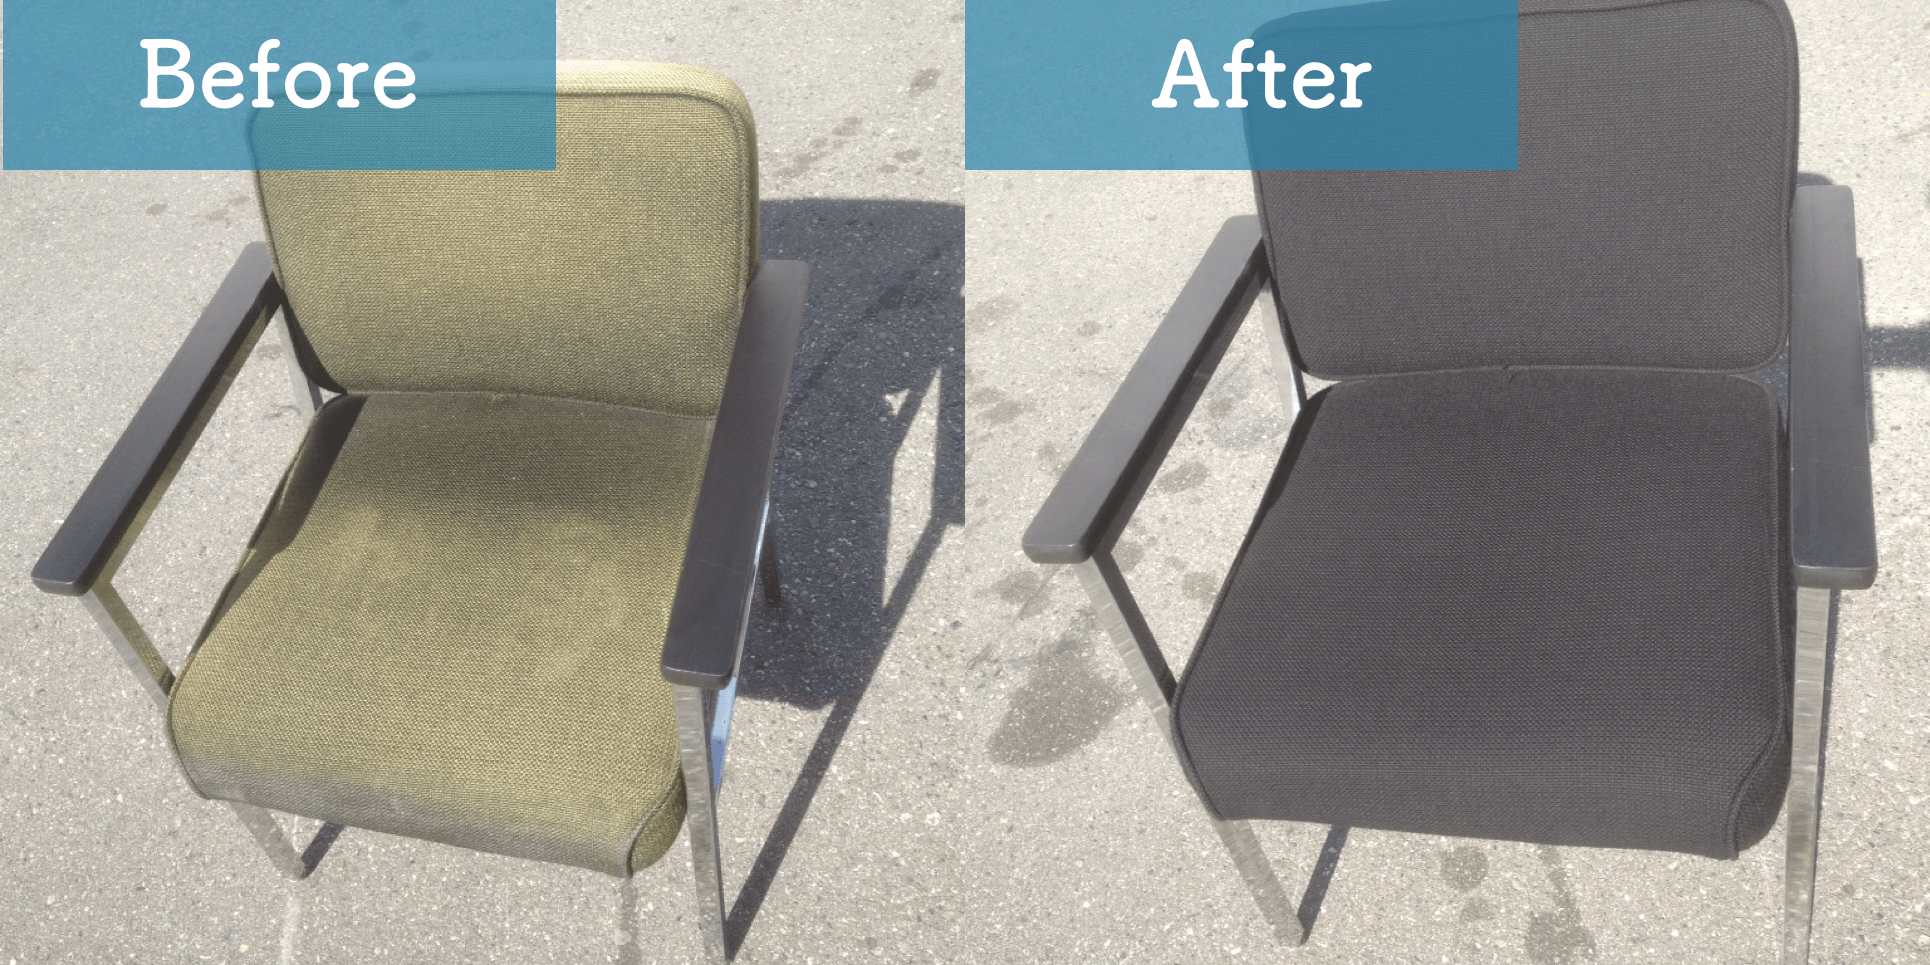 faded fabric chair before and after image